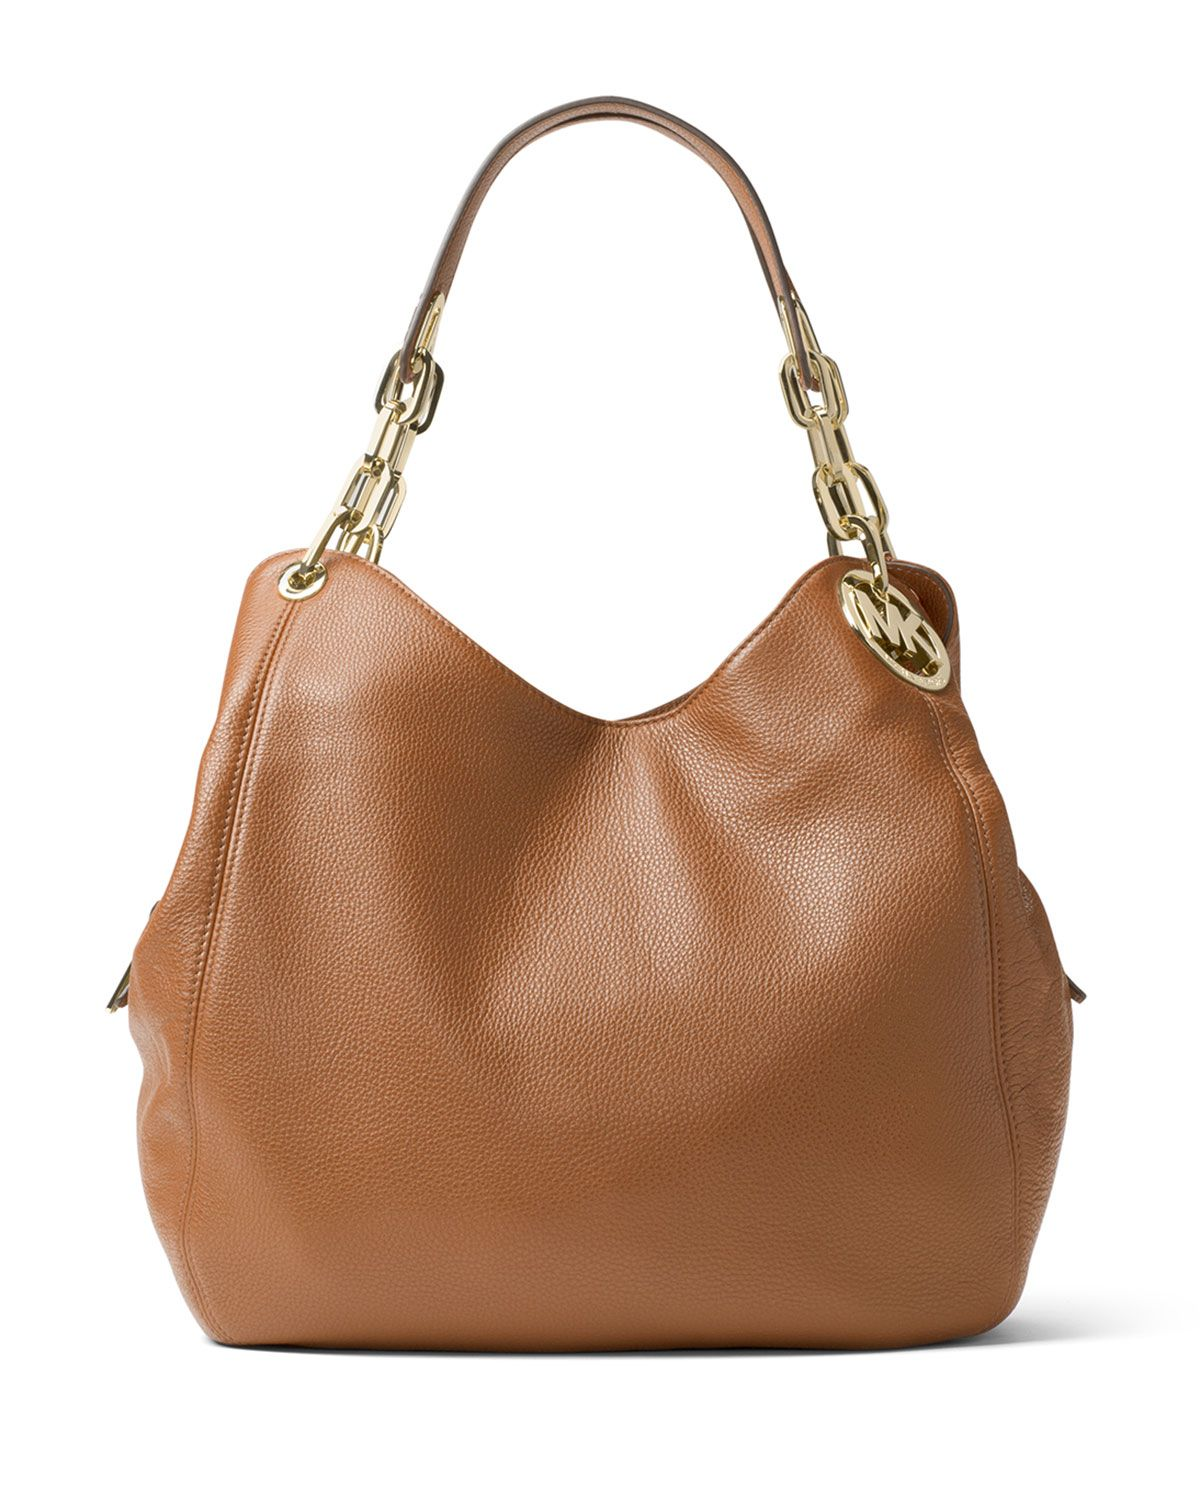 MICHAEL Michael Kors Fulton Large Leather Shoulder Tote Bag